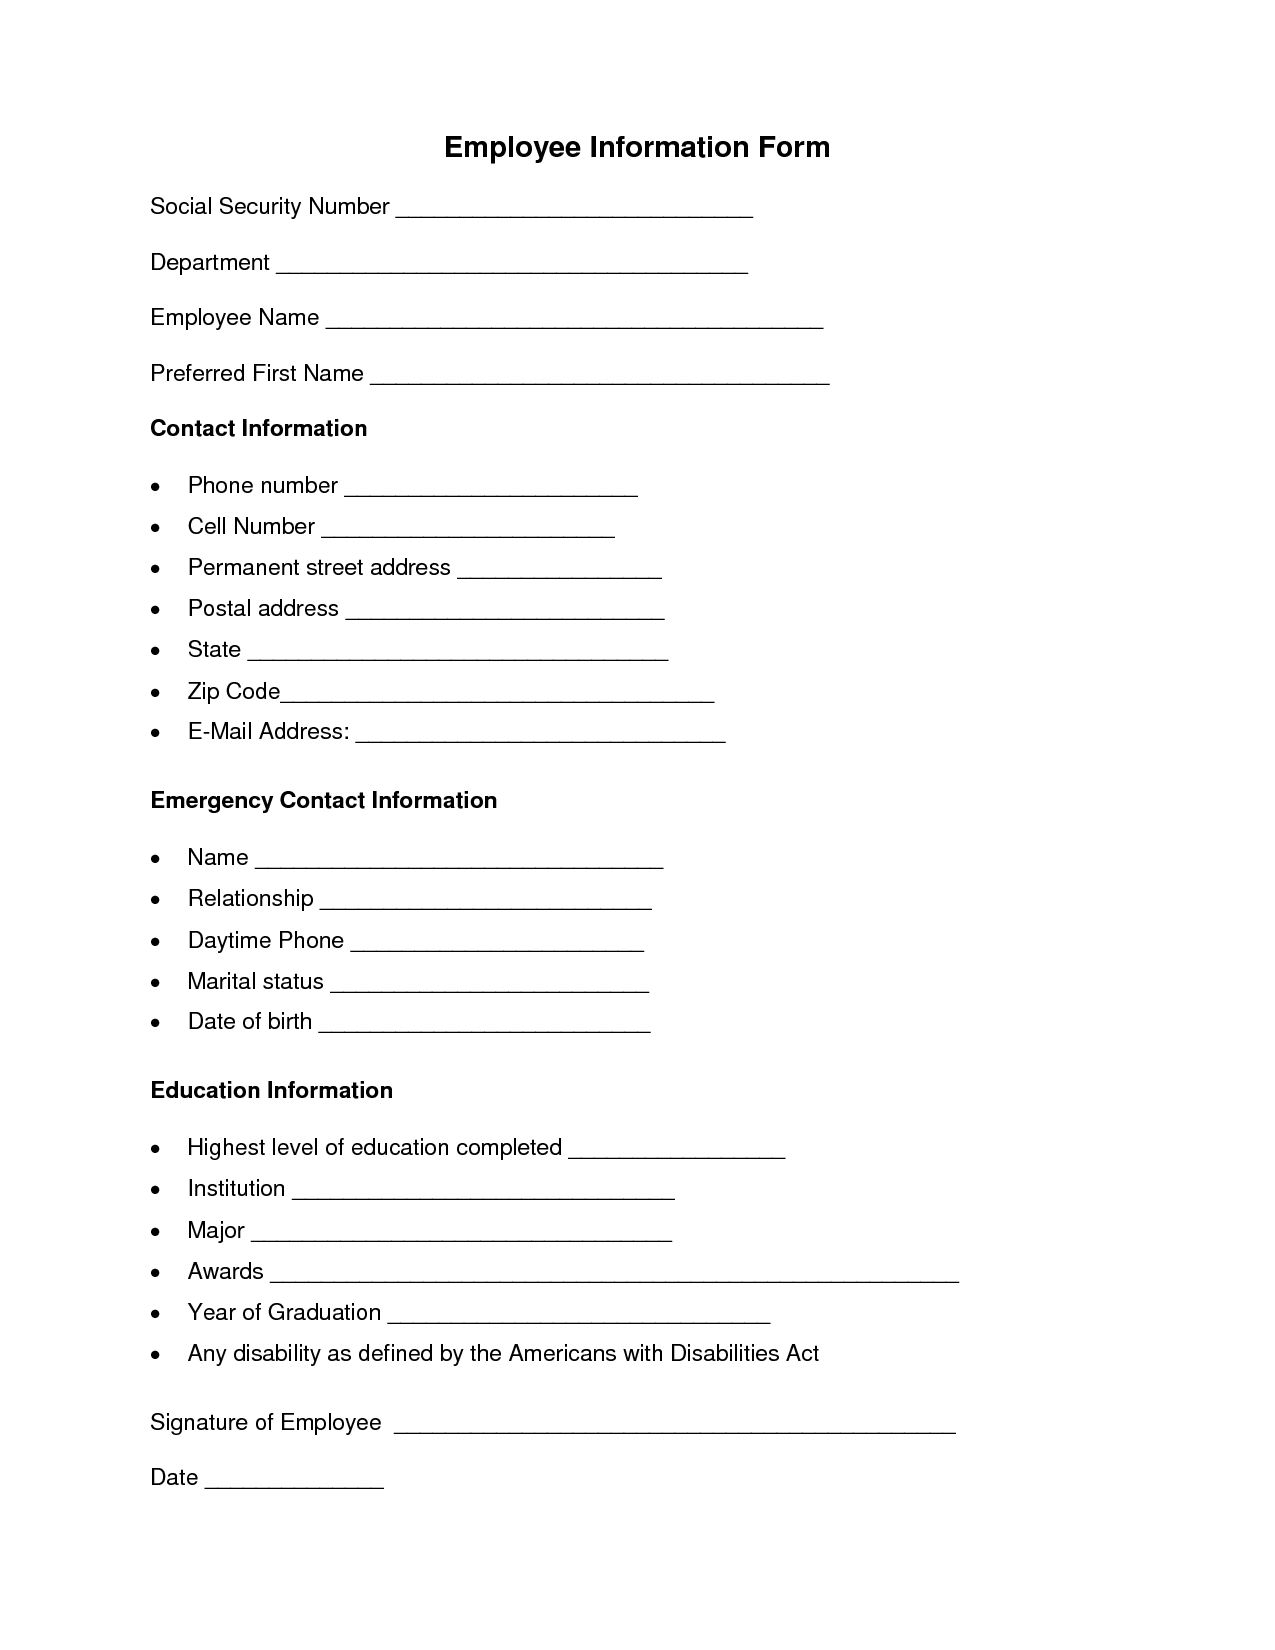 Employment Reference Form Template best photos of sample – Employee Information Form Sample